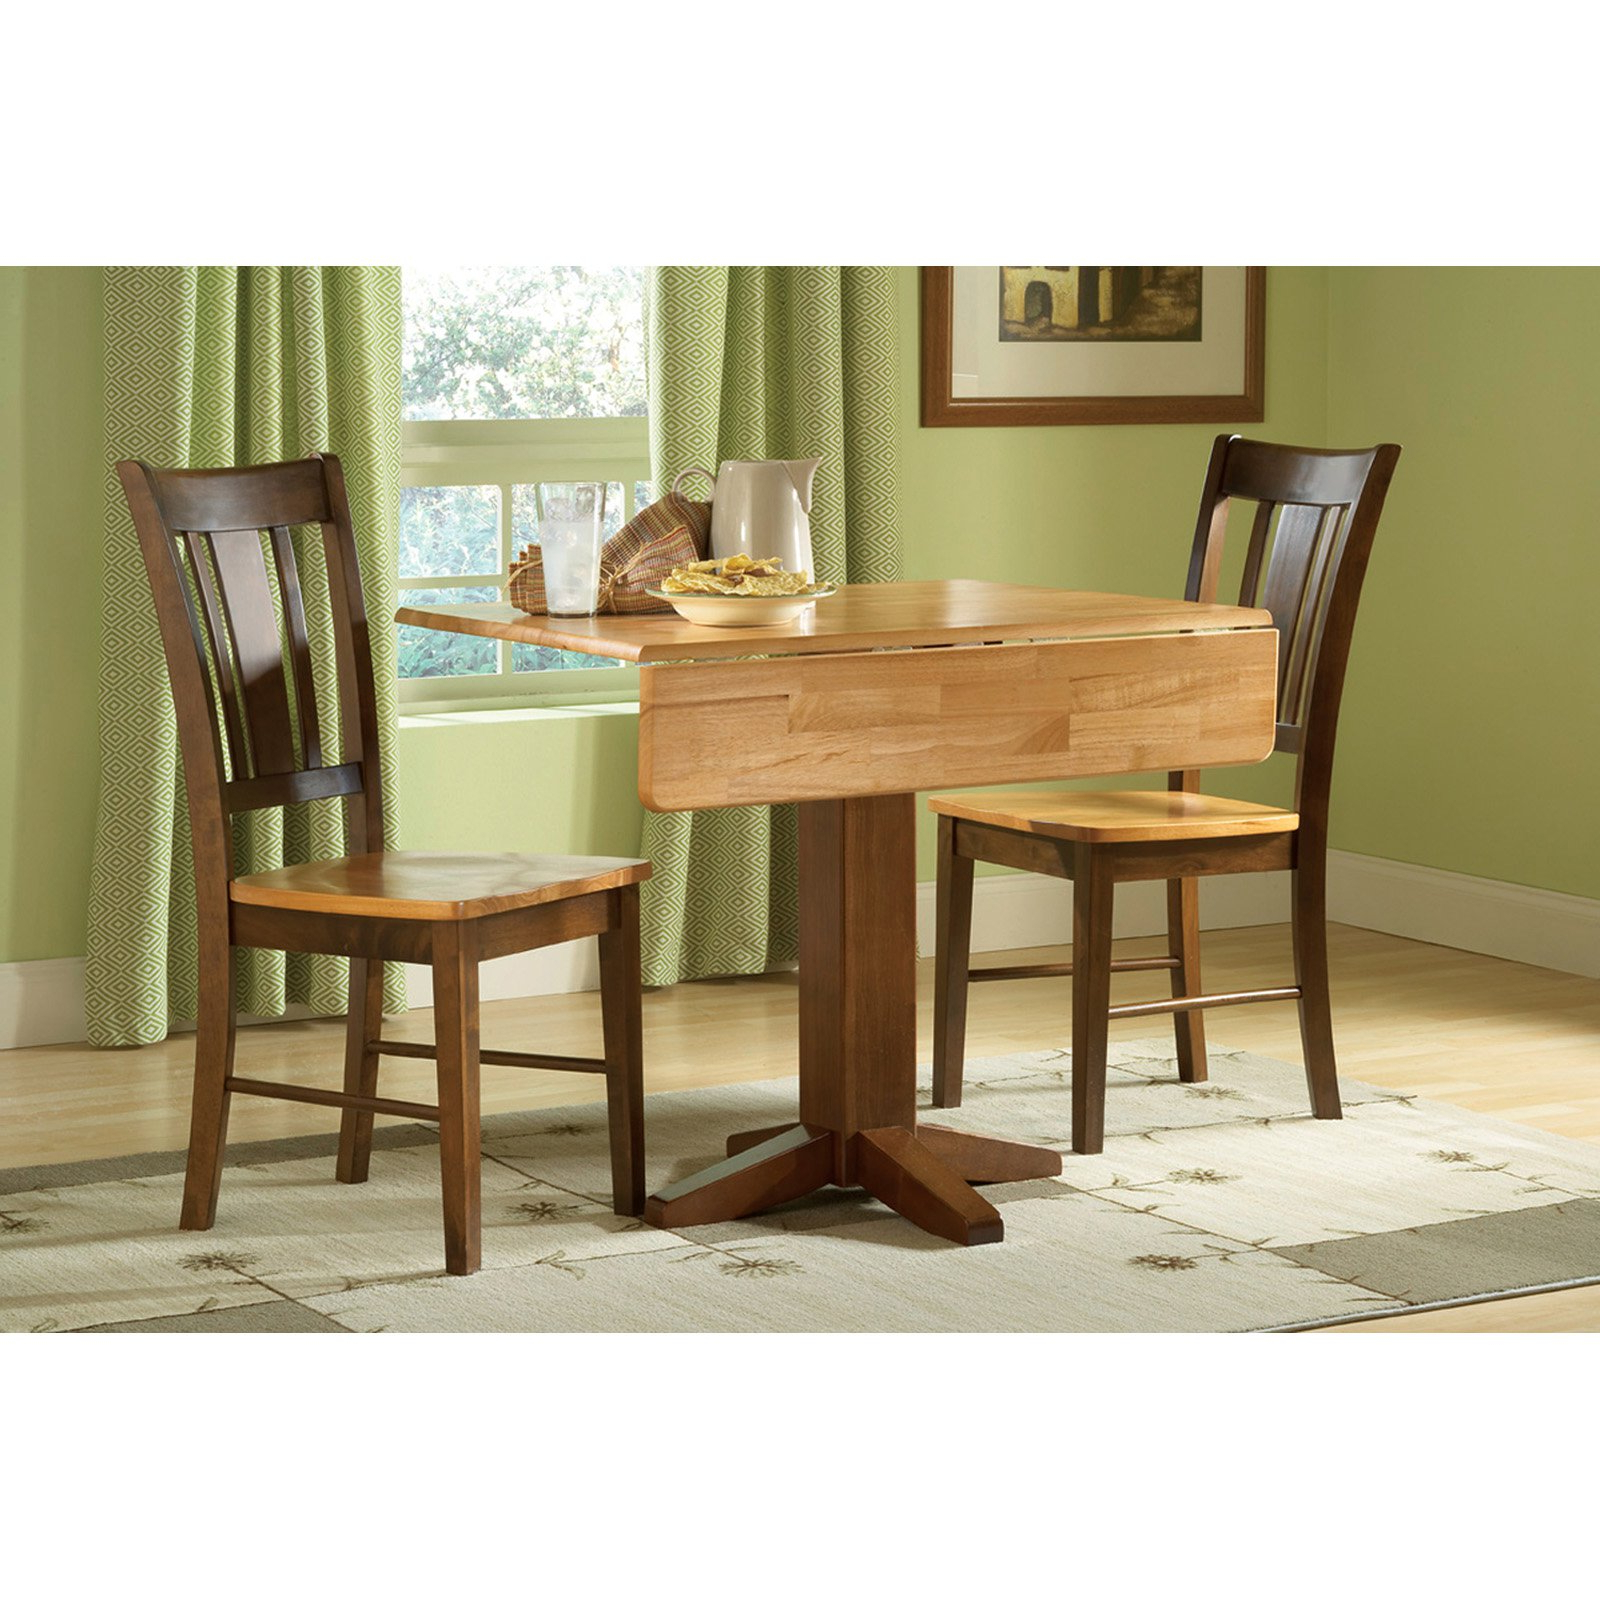 Most Recently Released 3 Pieces Dining Tables And Chair Set Intended For International Concepts Square Dual Drop Leaf 3 Piece Dining (Gallery 26 of 30)